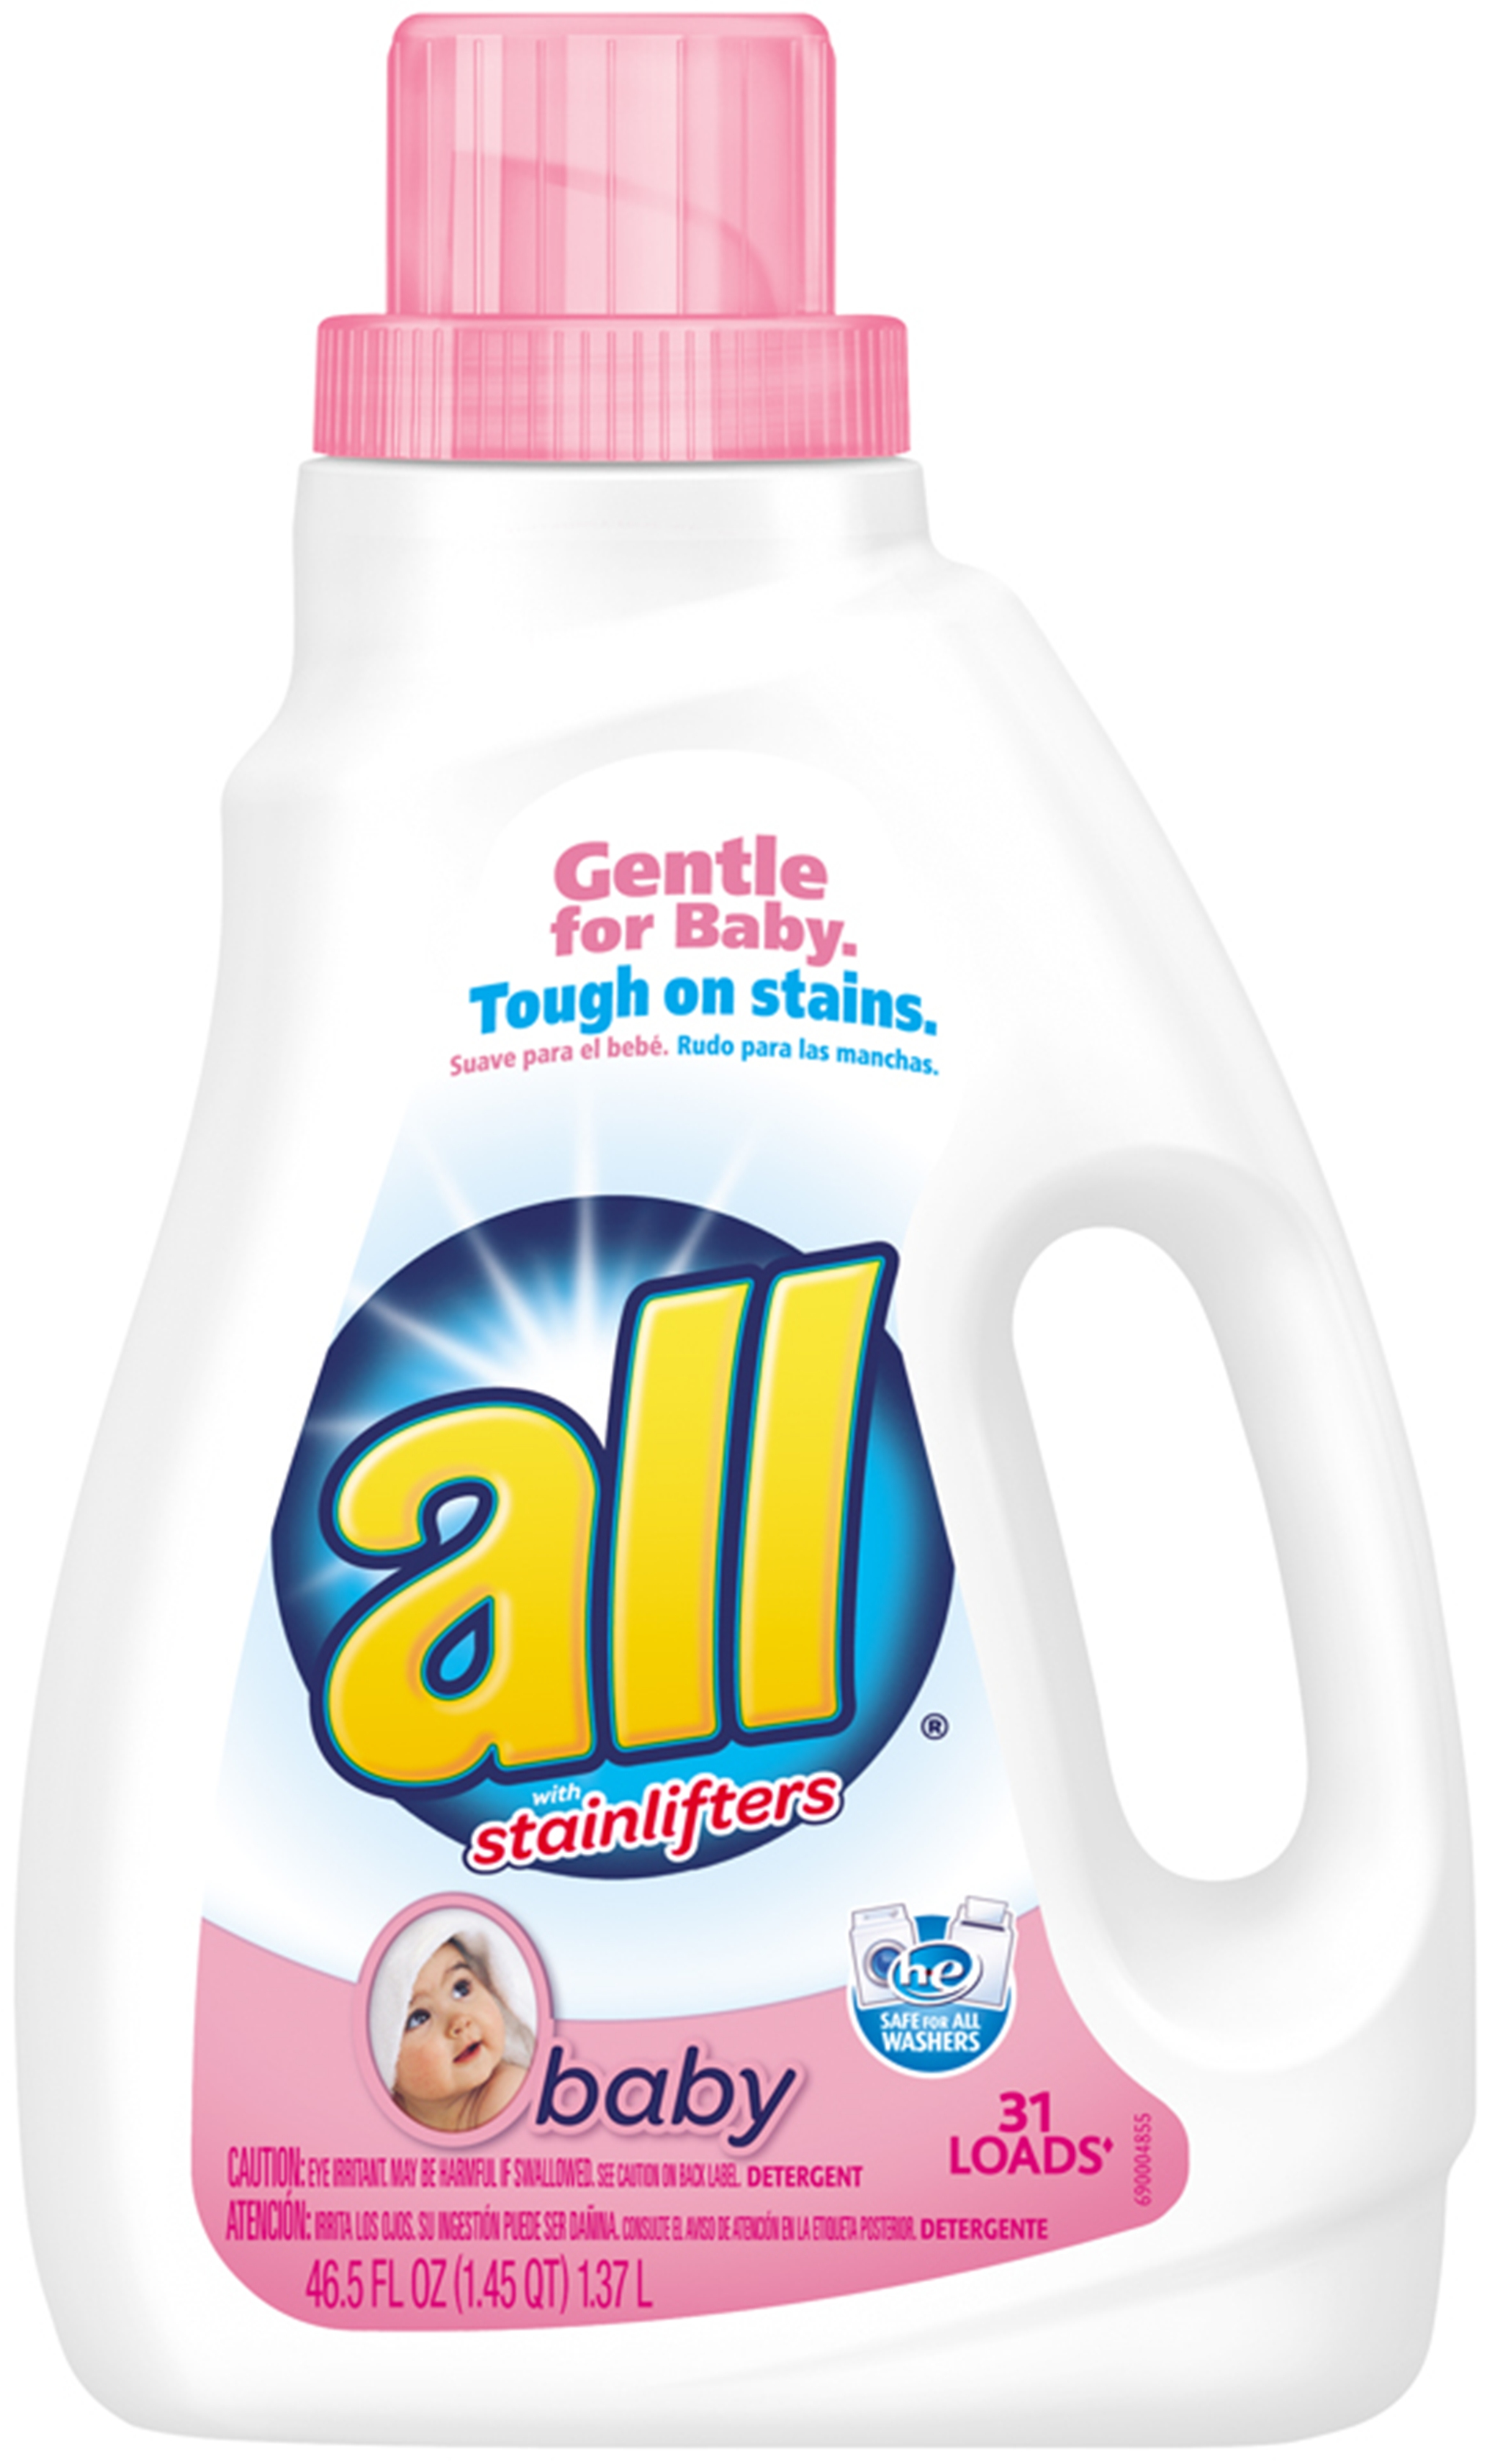 All Baby Liquid Laundry Detergent W Stainlifters 46 5 Oz 31 Loads